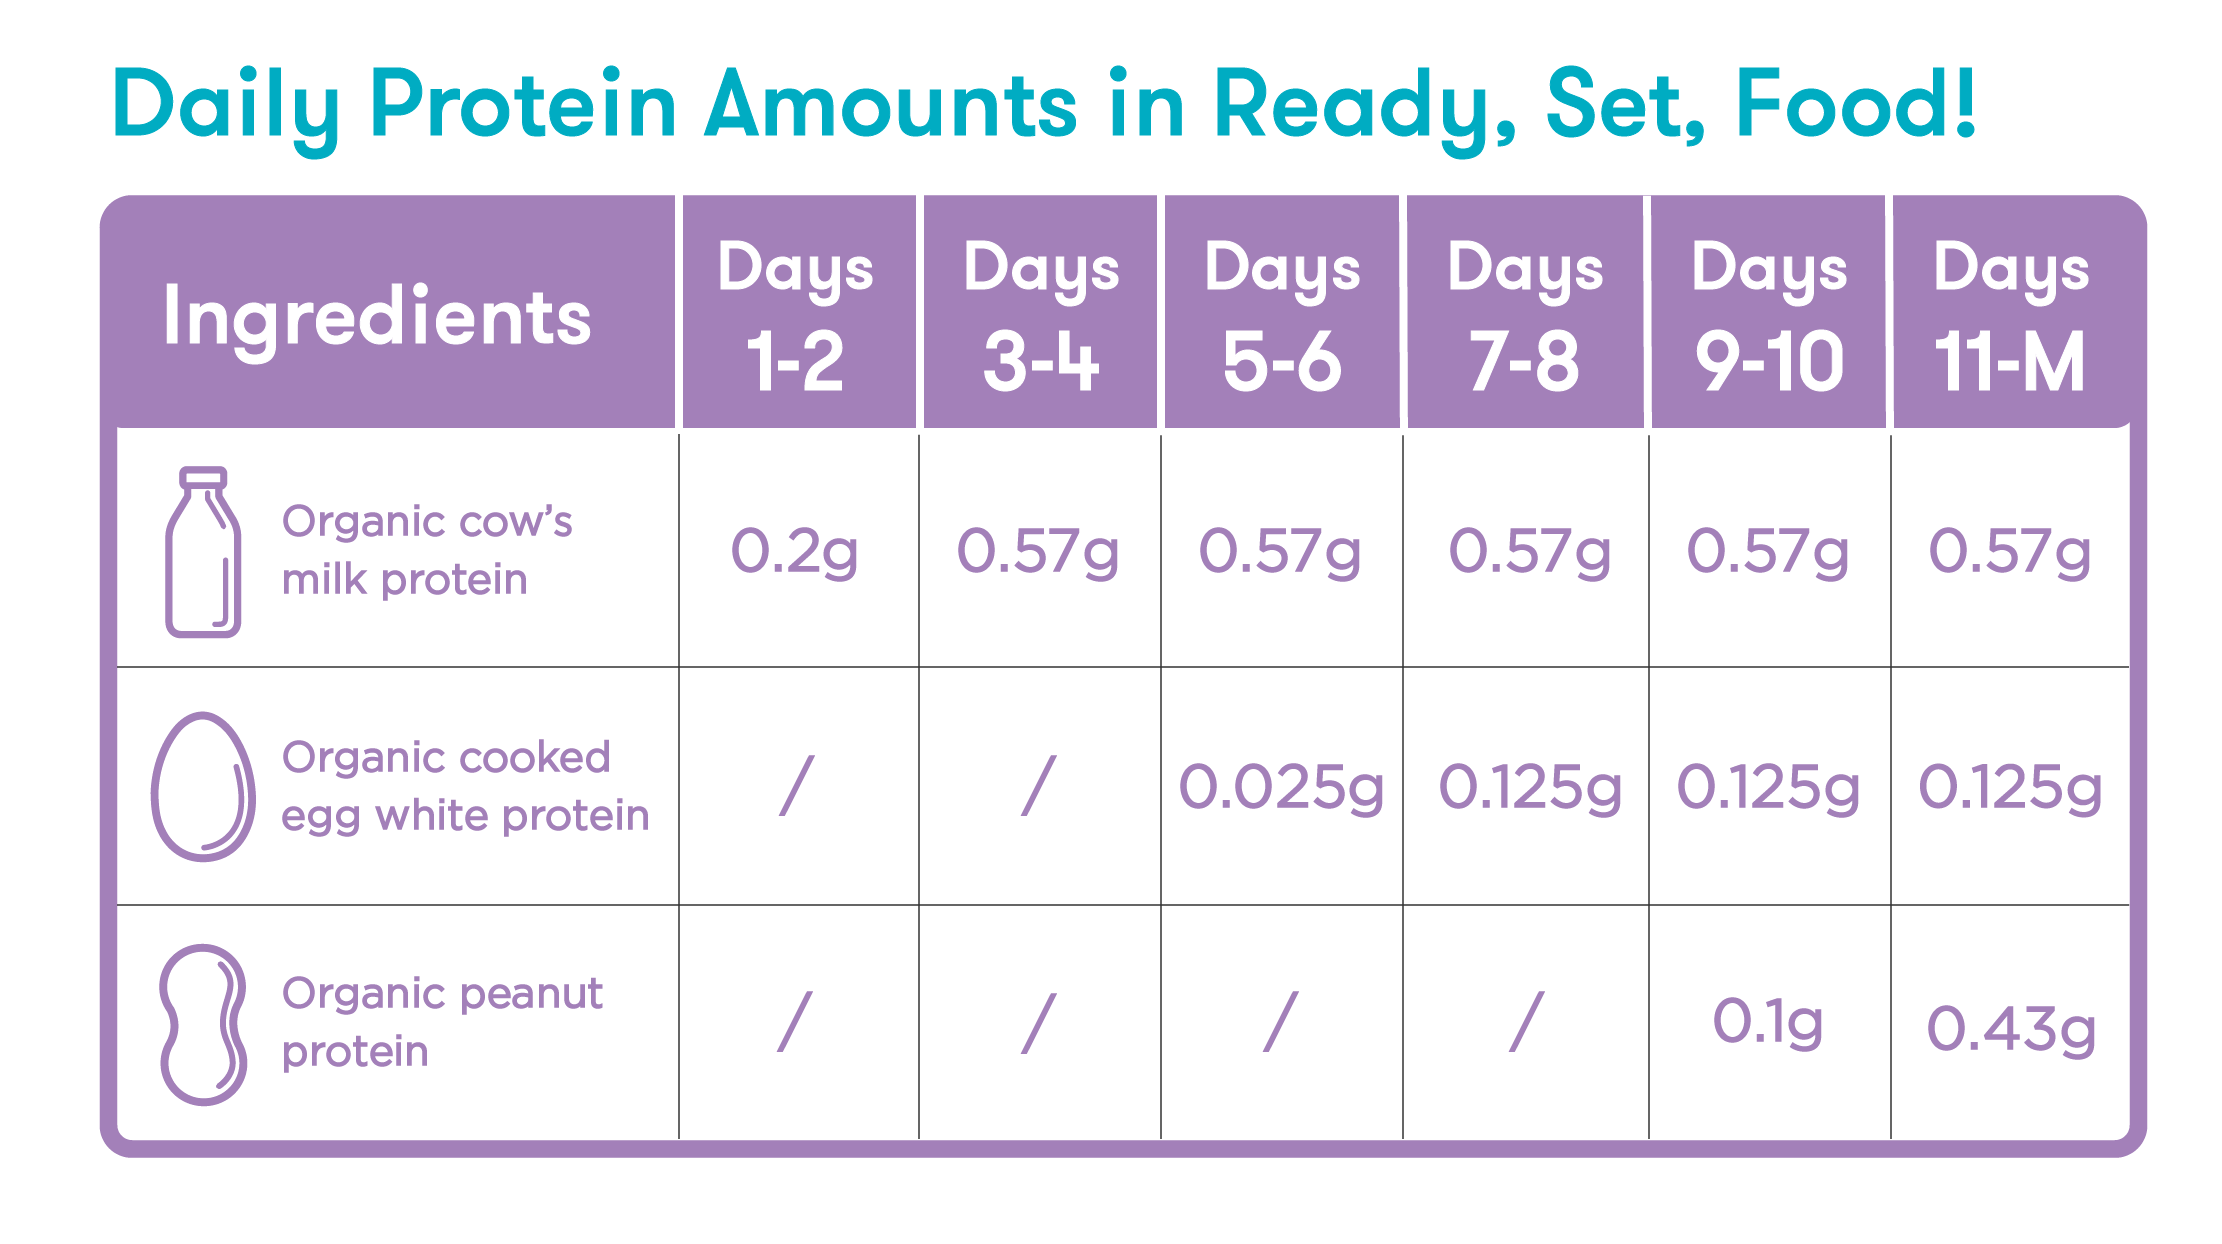 protein amounts in Ready, Set, Food!